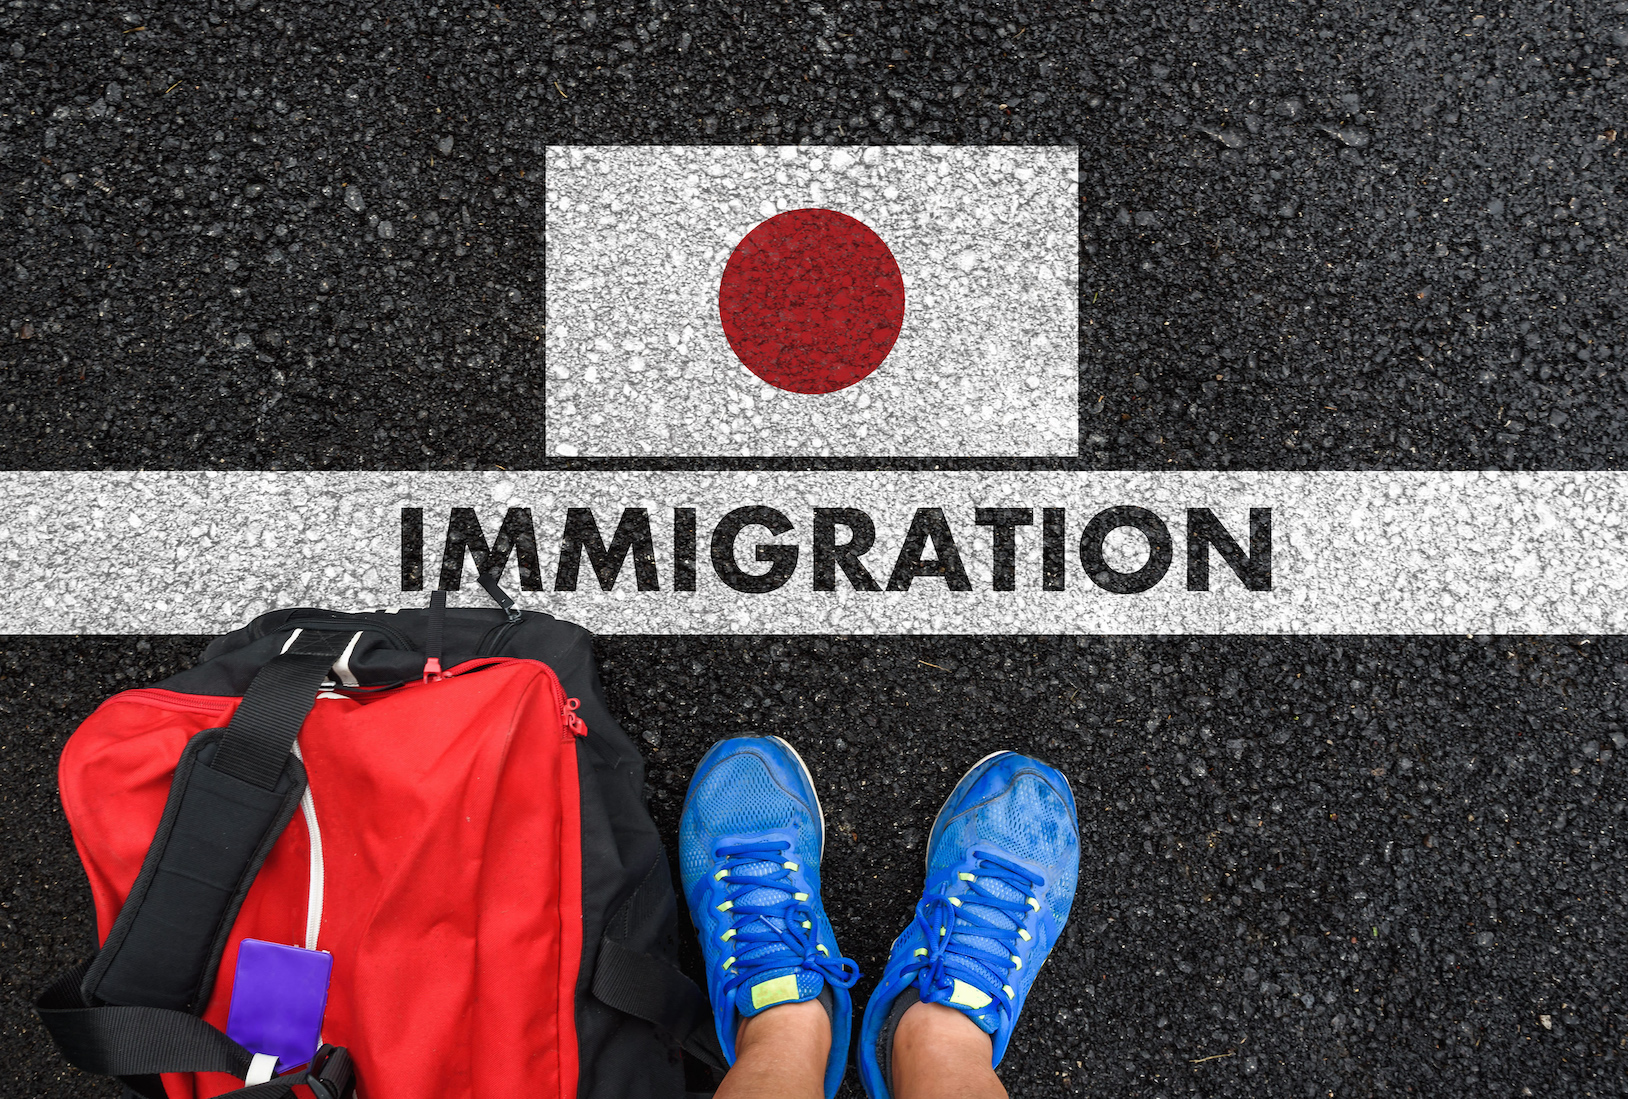 Japan To Tighten Foreign Student Visa Screening As Of April To Cut Down On Overstayers List Of Countries Blog